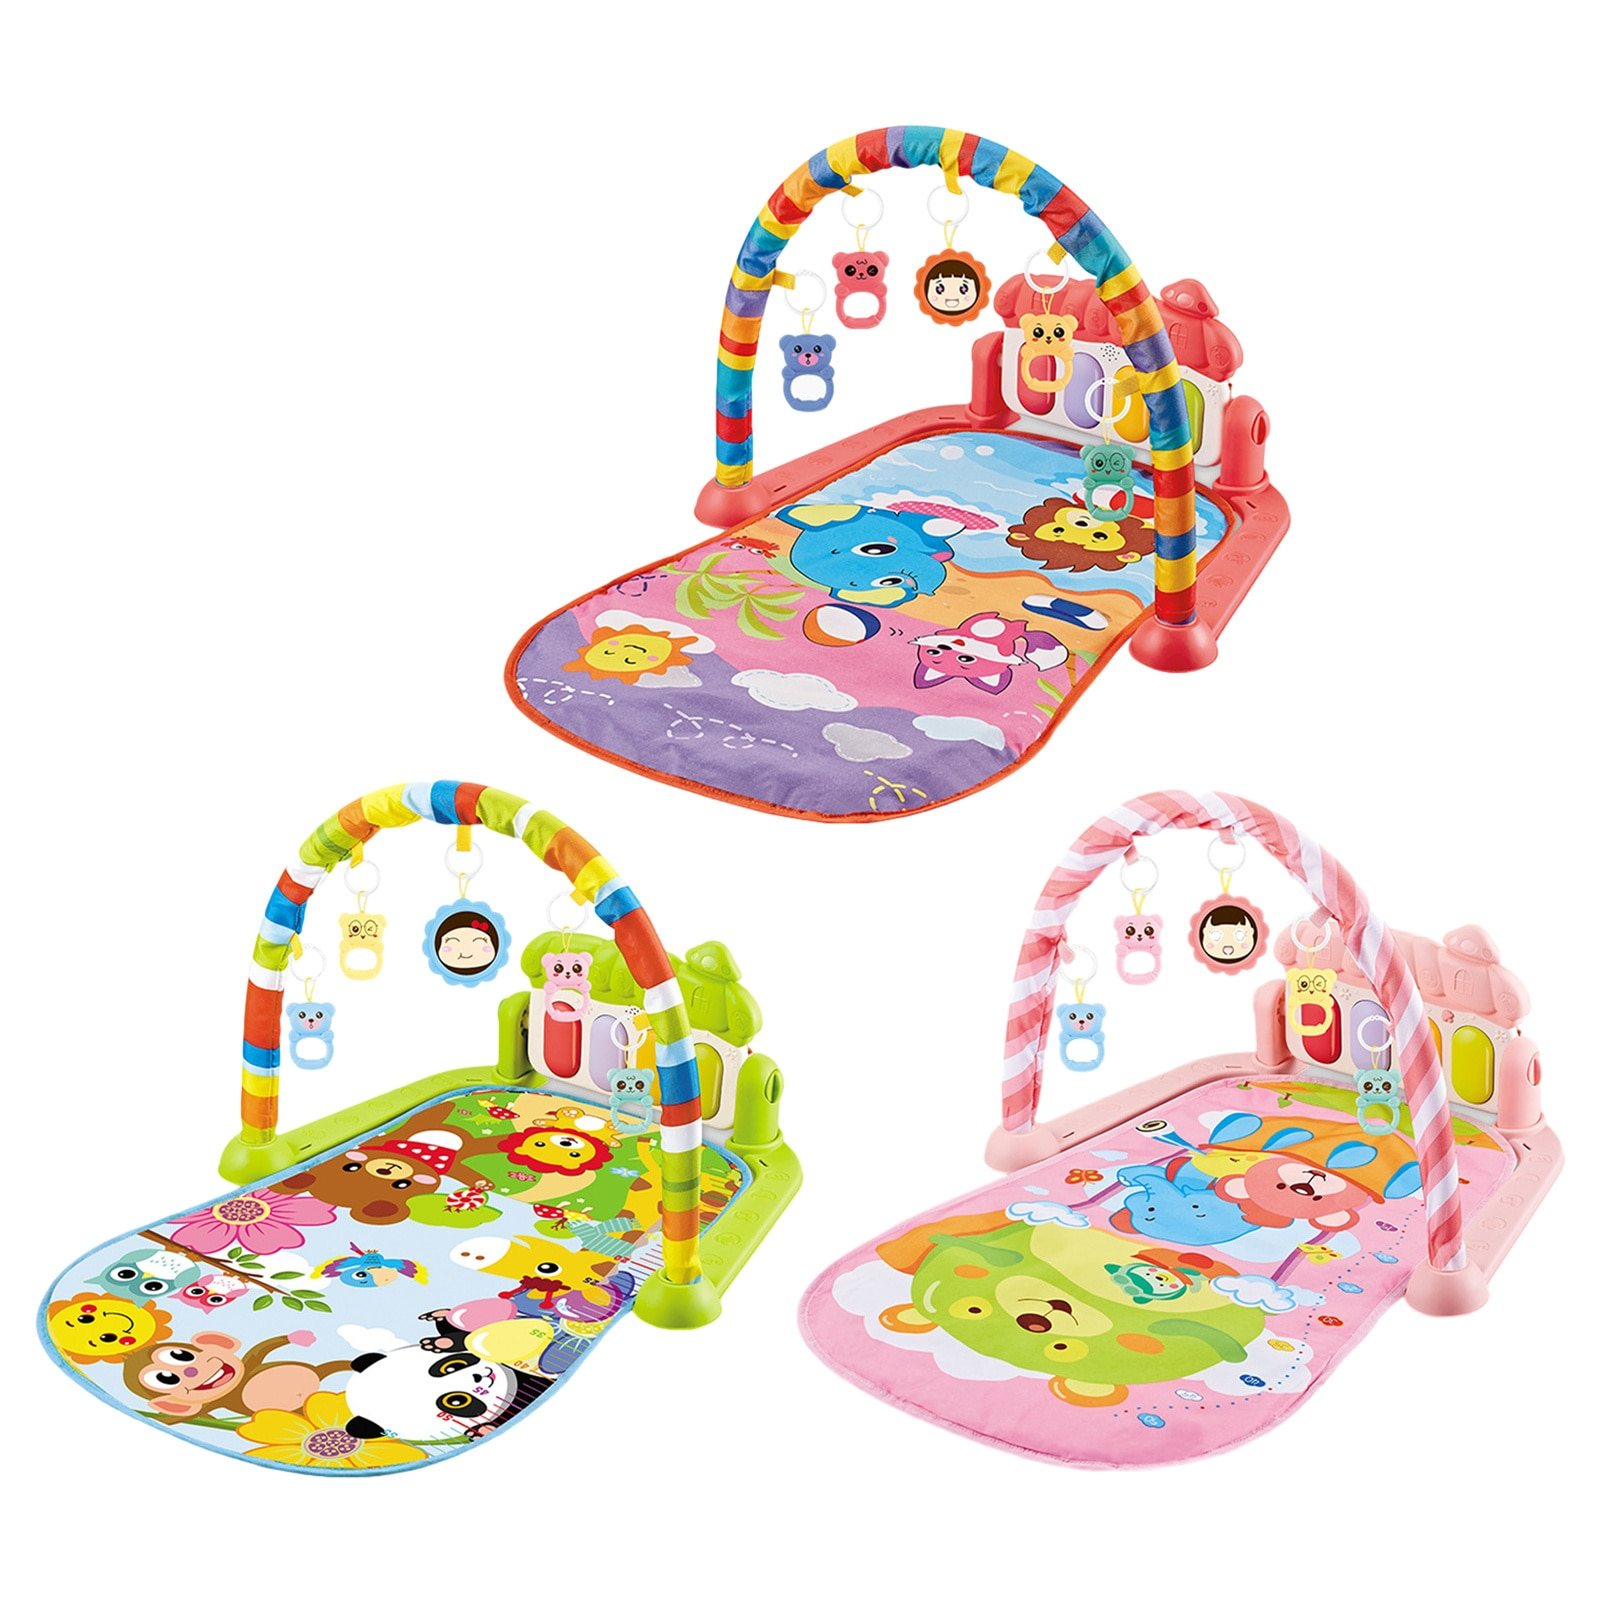 infant baby flying chess waterproof play mat early learning toy fitness bodybuilding frame crawling mat kick play lay sit toy Baby Play Mat Toy Rug Baby Pedal Piano Play Music Crawling Mat Play Piano Keyboard Infant Playmat Activity Gym With Hanging Toys